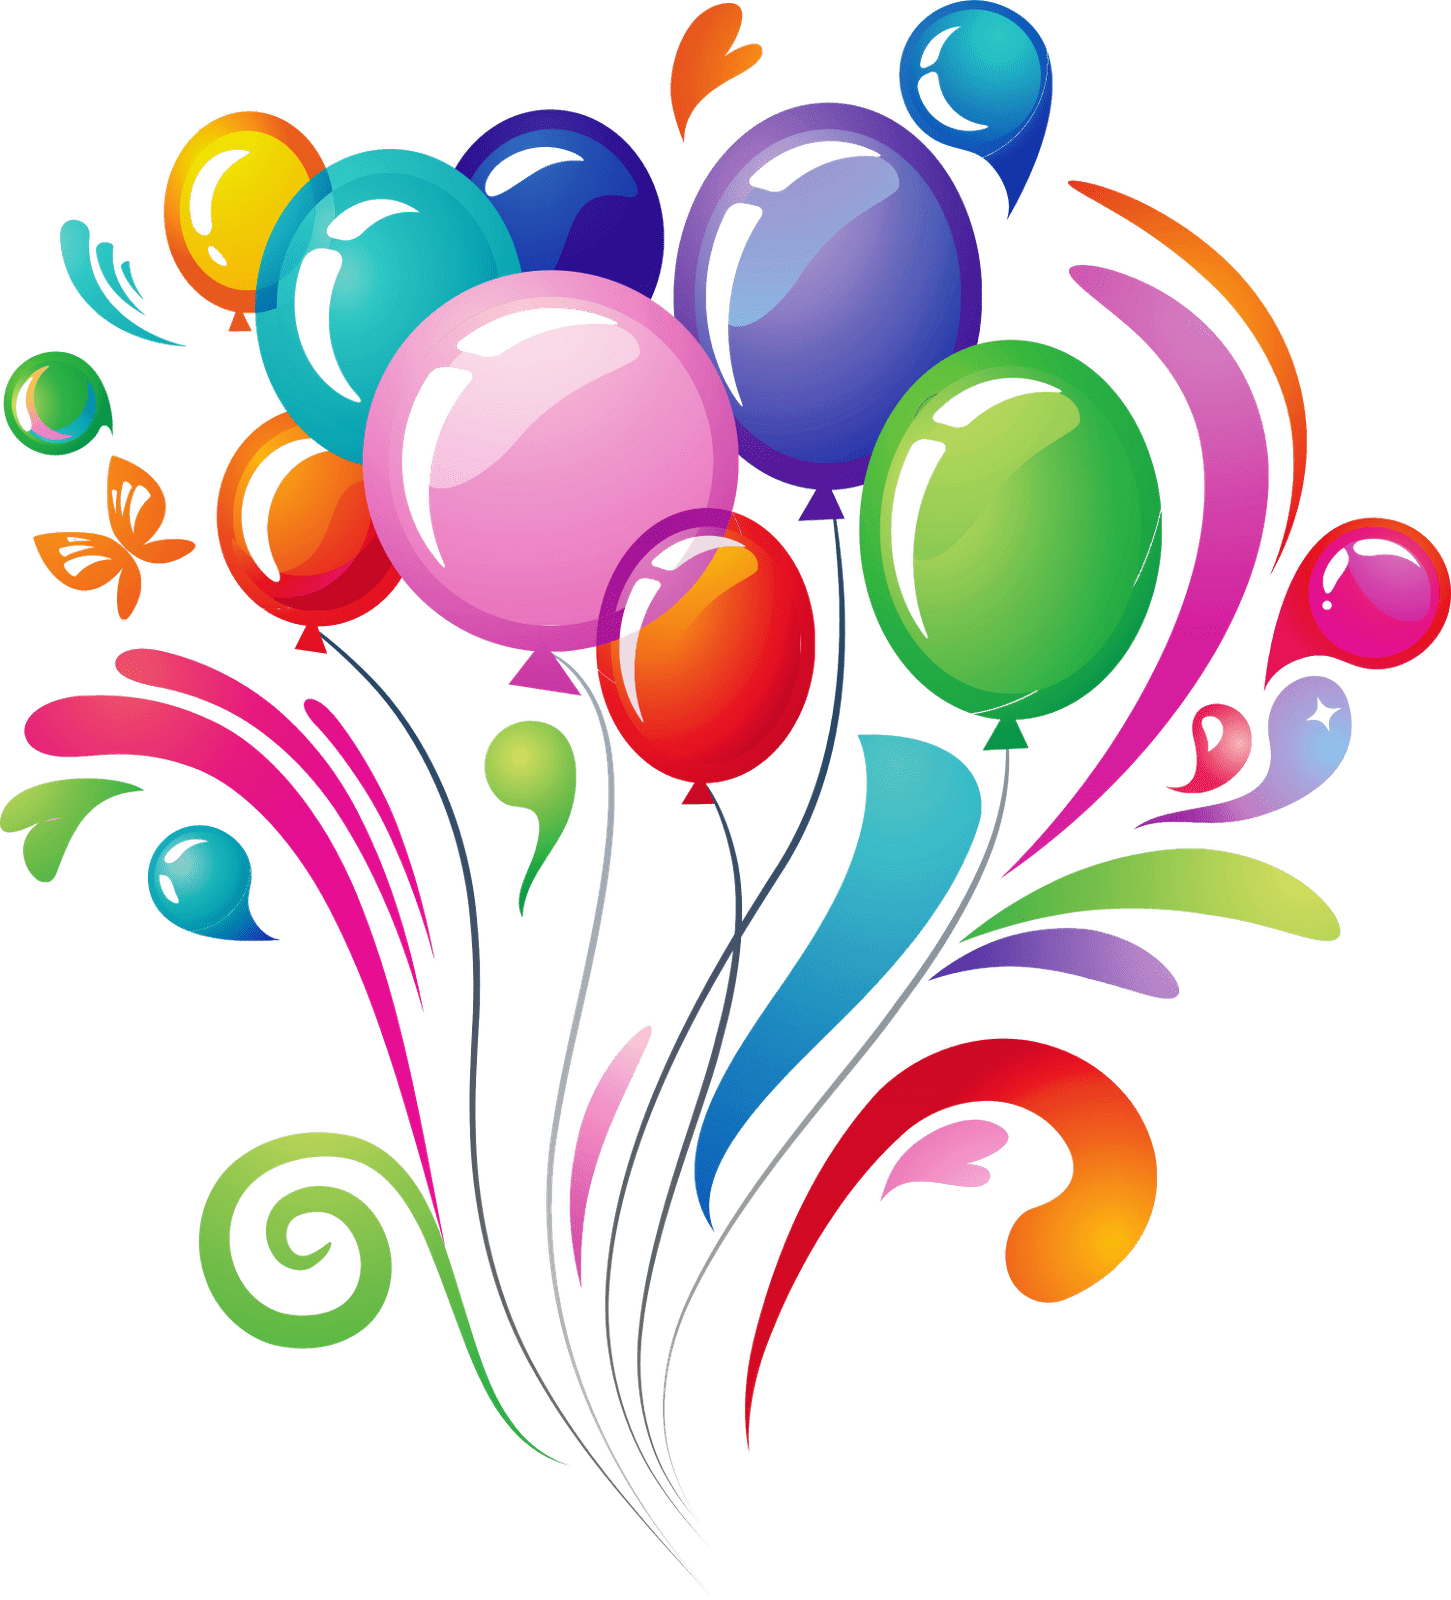 Happy Birthday Balloons Png - Balloons Explosion